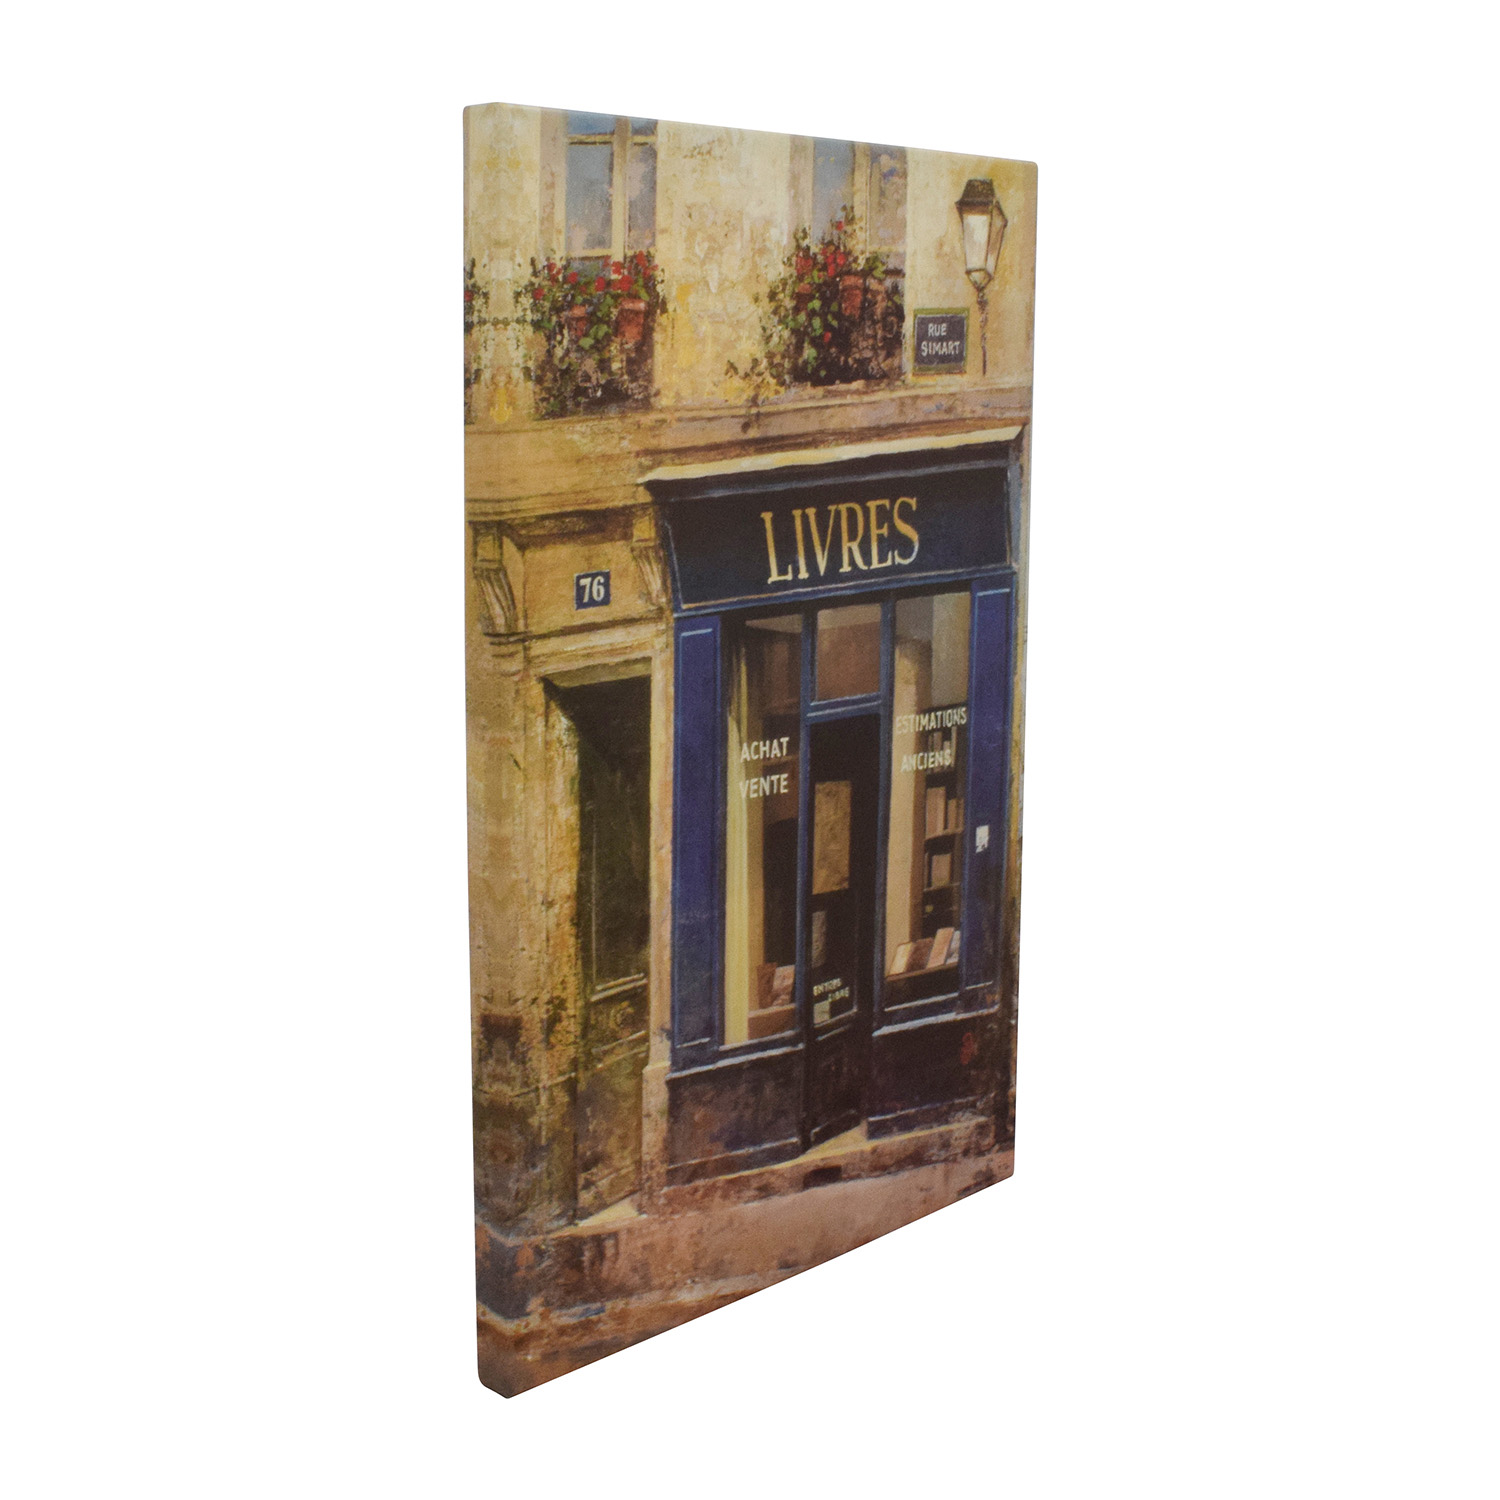 Chiu Tak Hak Canvas Painting of Livres Light and dark colors